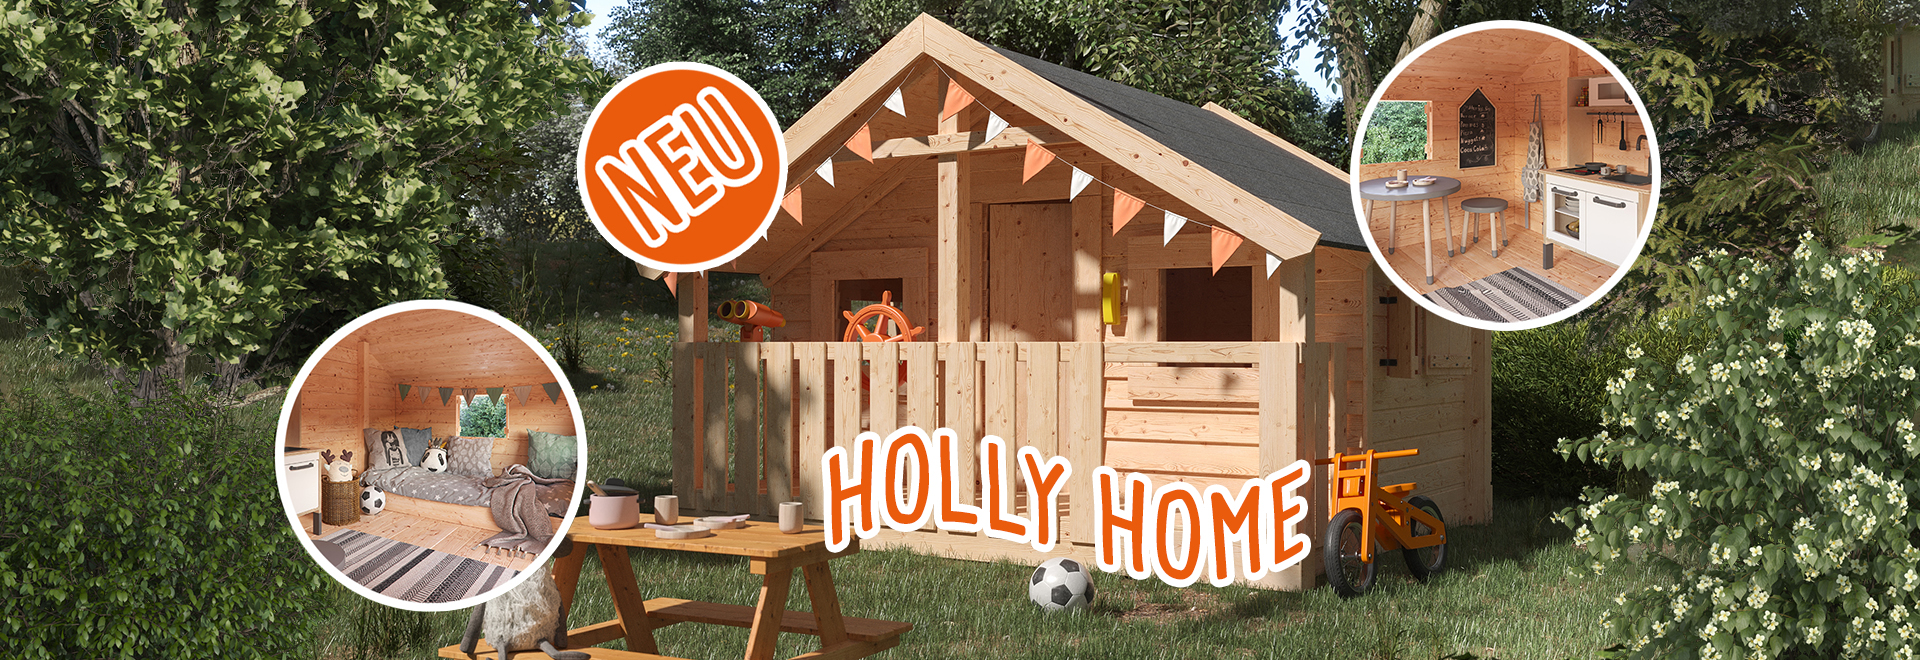 Spielhaus Holly Home